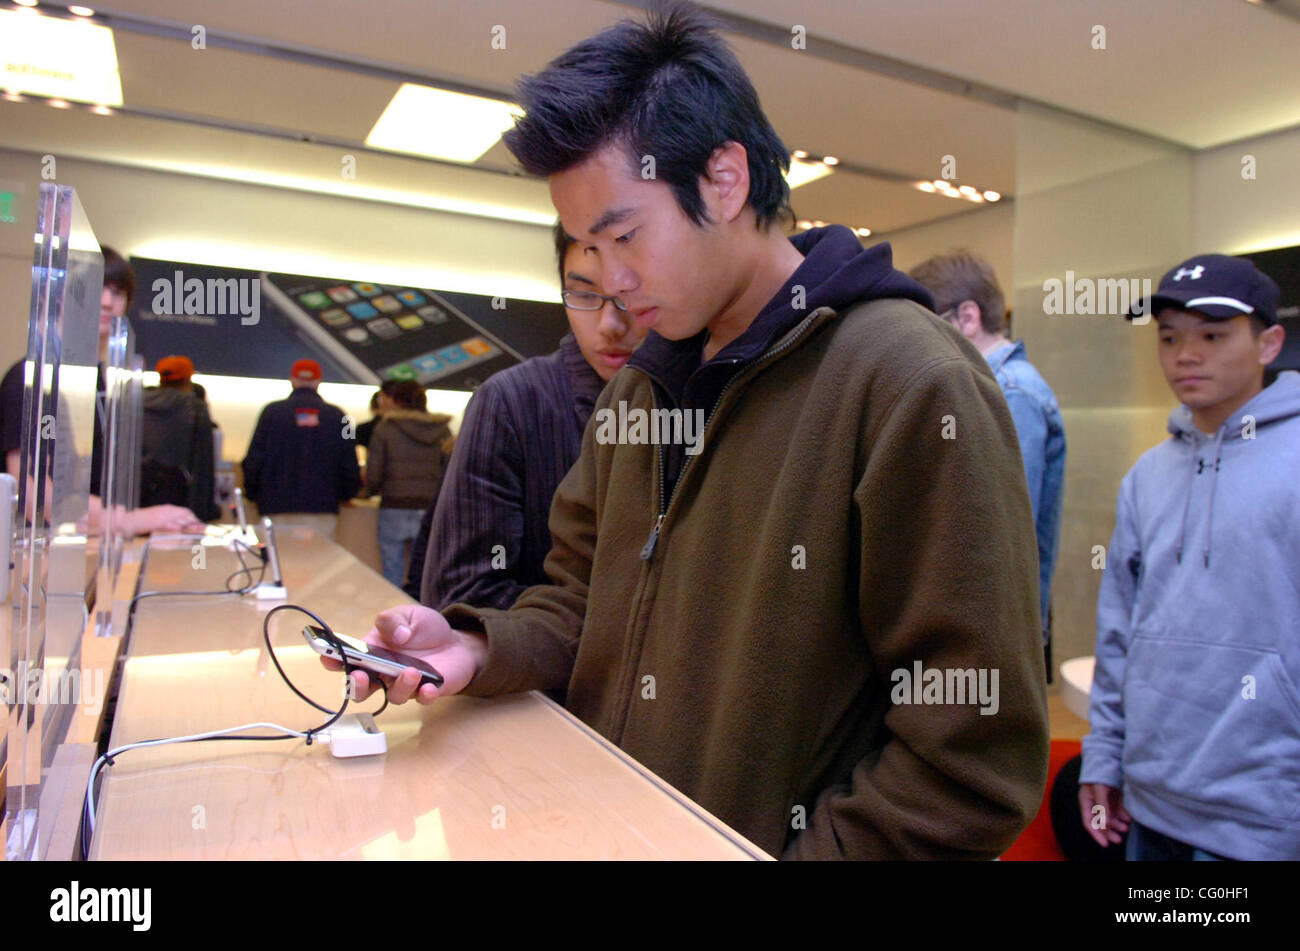 Alan Fung of San Diego tries out an iPhone before making his purchase at the Apple Store in Emeryville on Friday - Stock Image